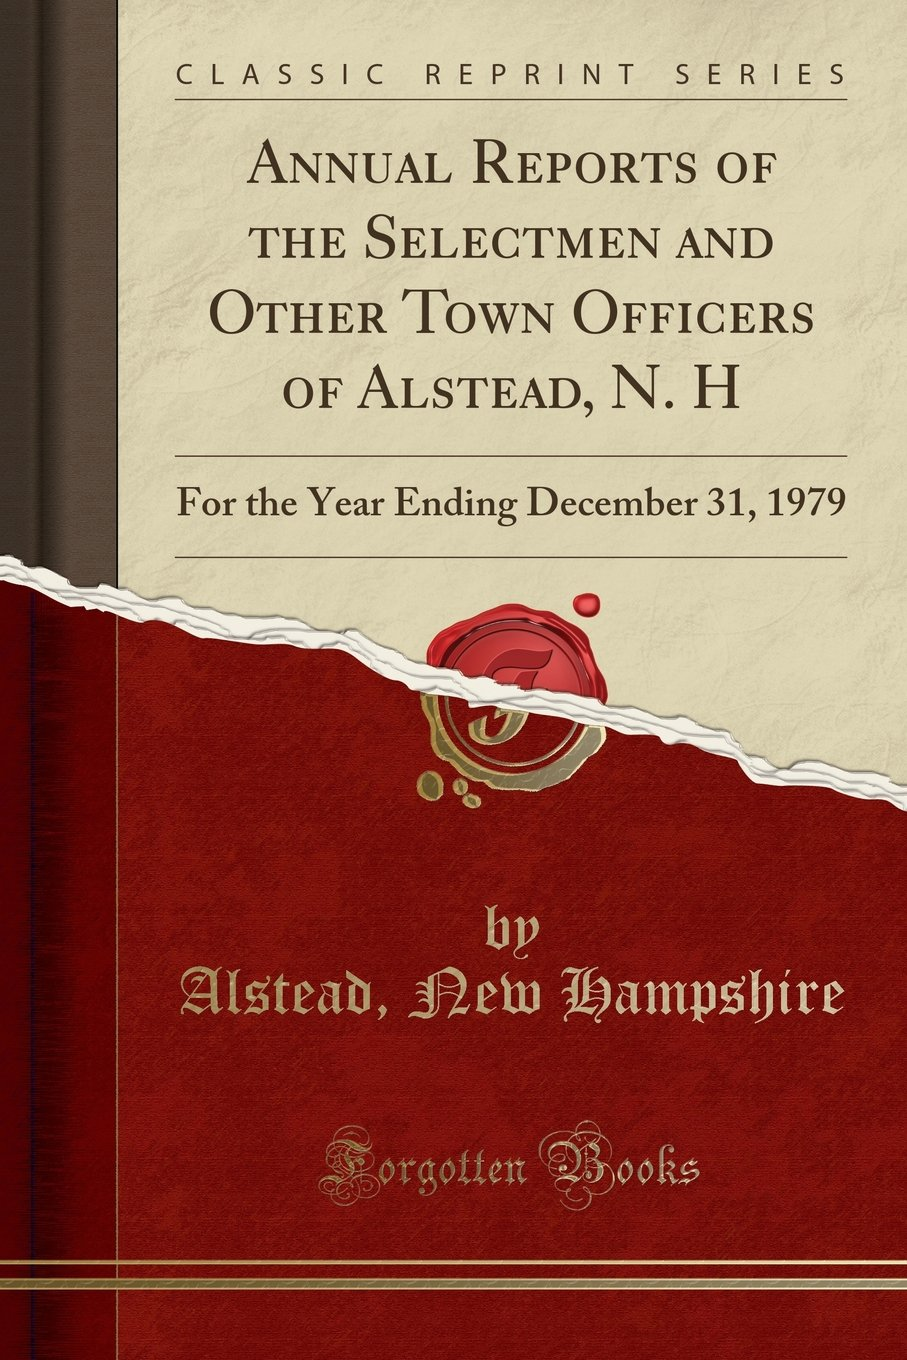 Annual Reports of the Selectmen and Other Town Officers of Alstead, N. H: For the Year Ending December 31, 1979 (Classic Reprint) ebook